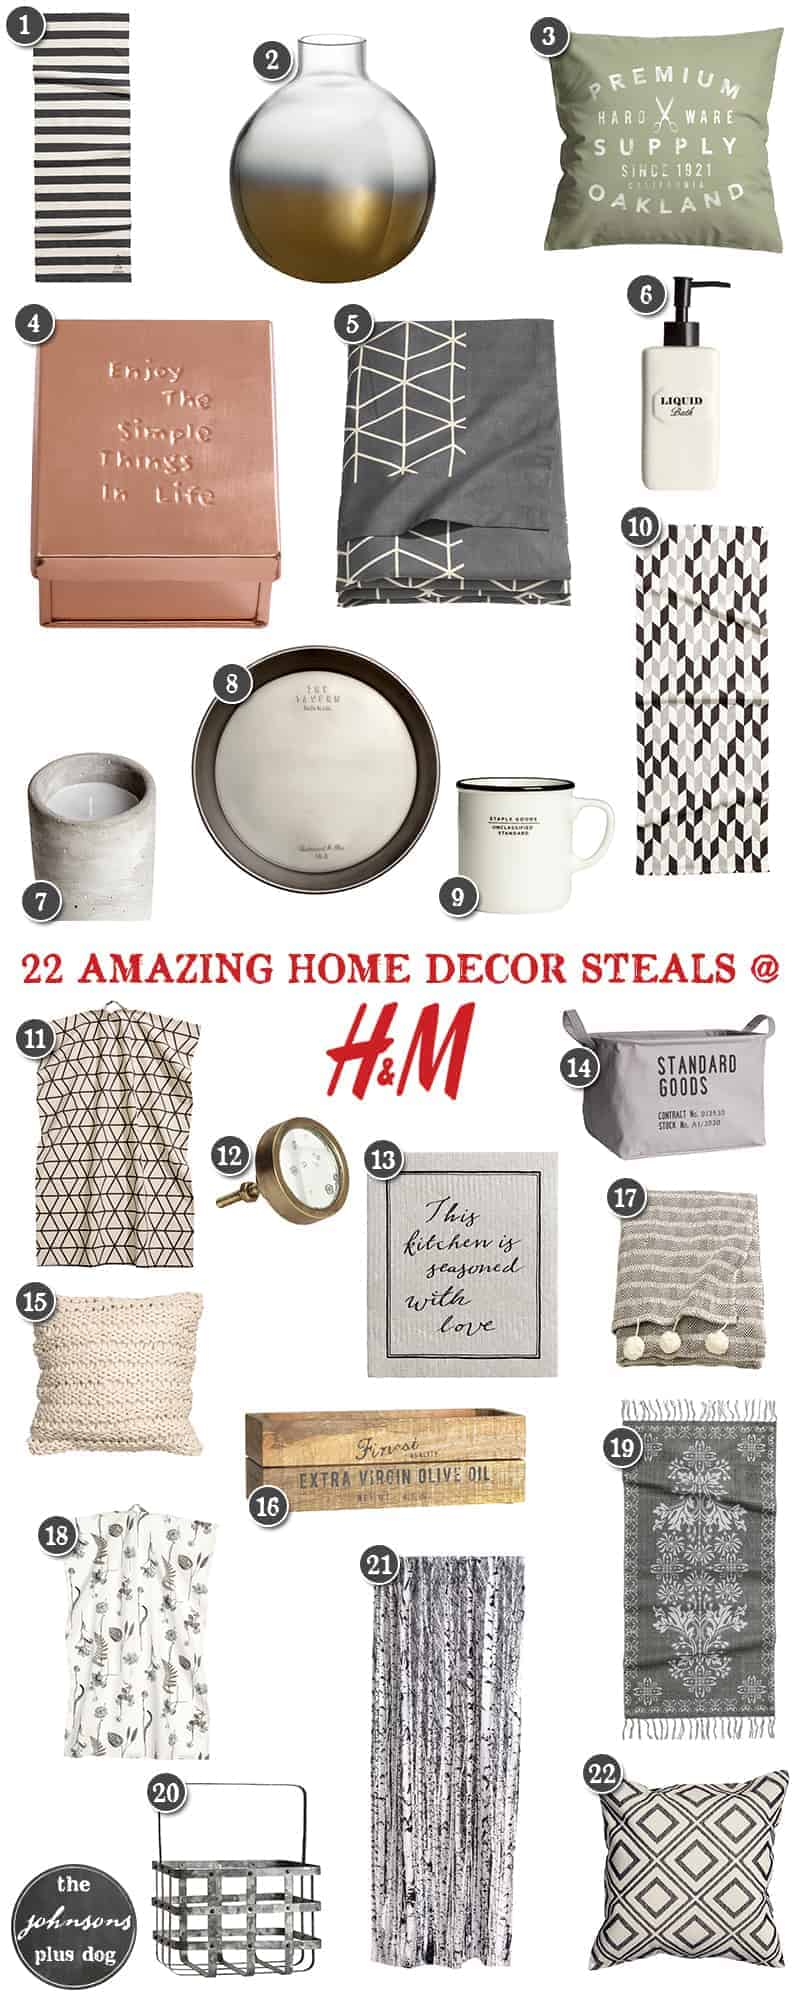 22 Amazing Home Decor Deals at H&M | the johnsons plus dog